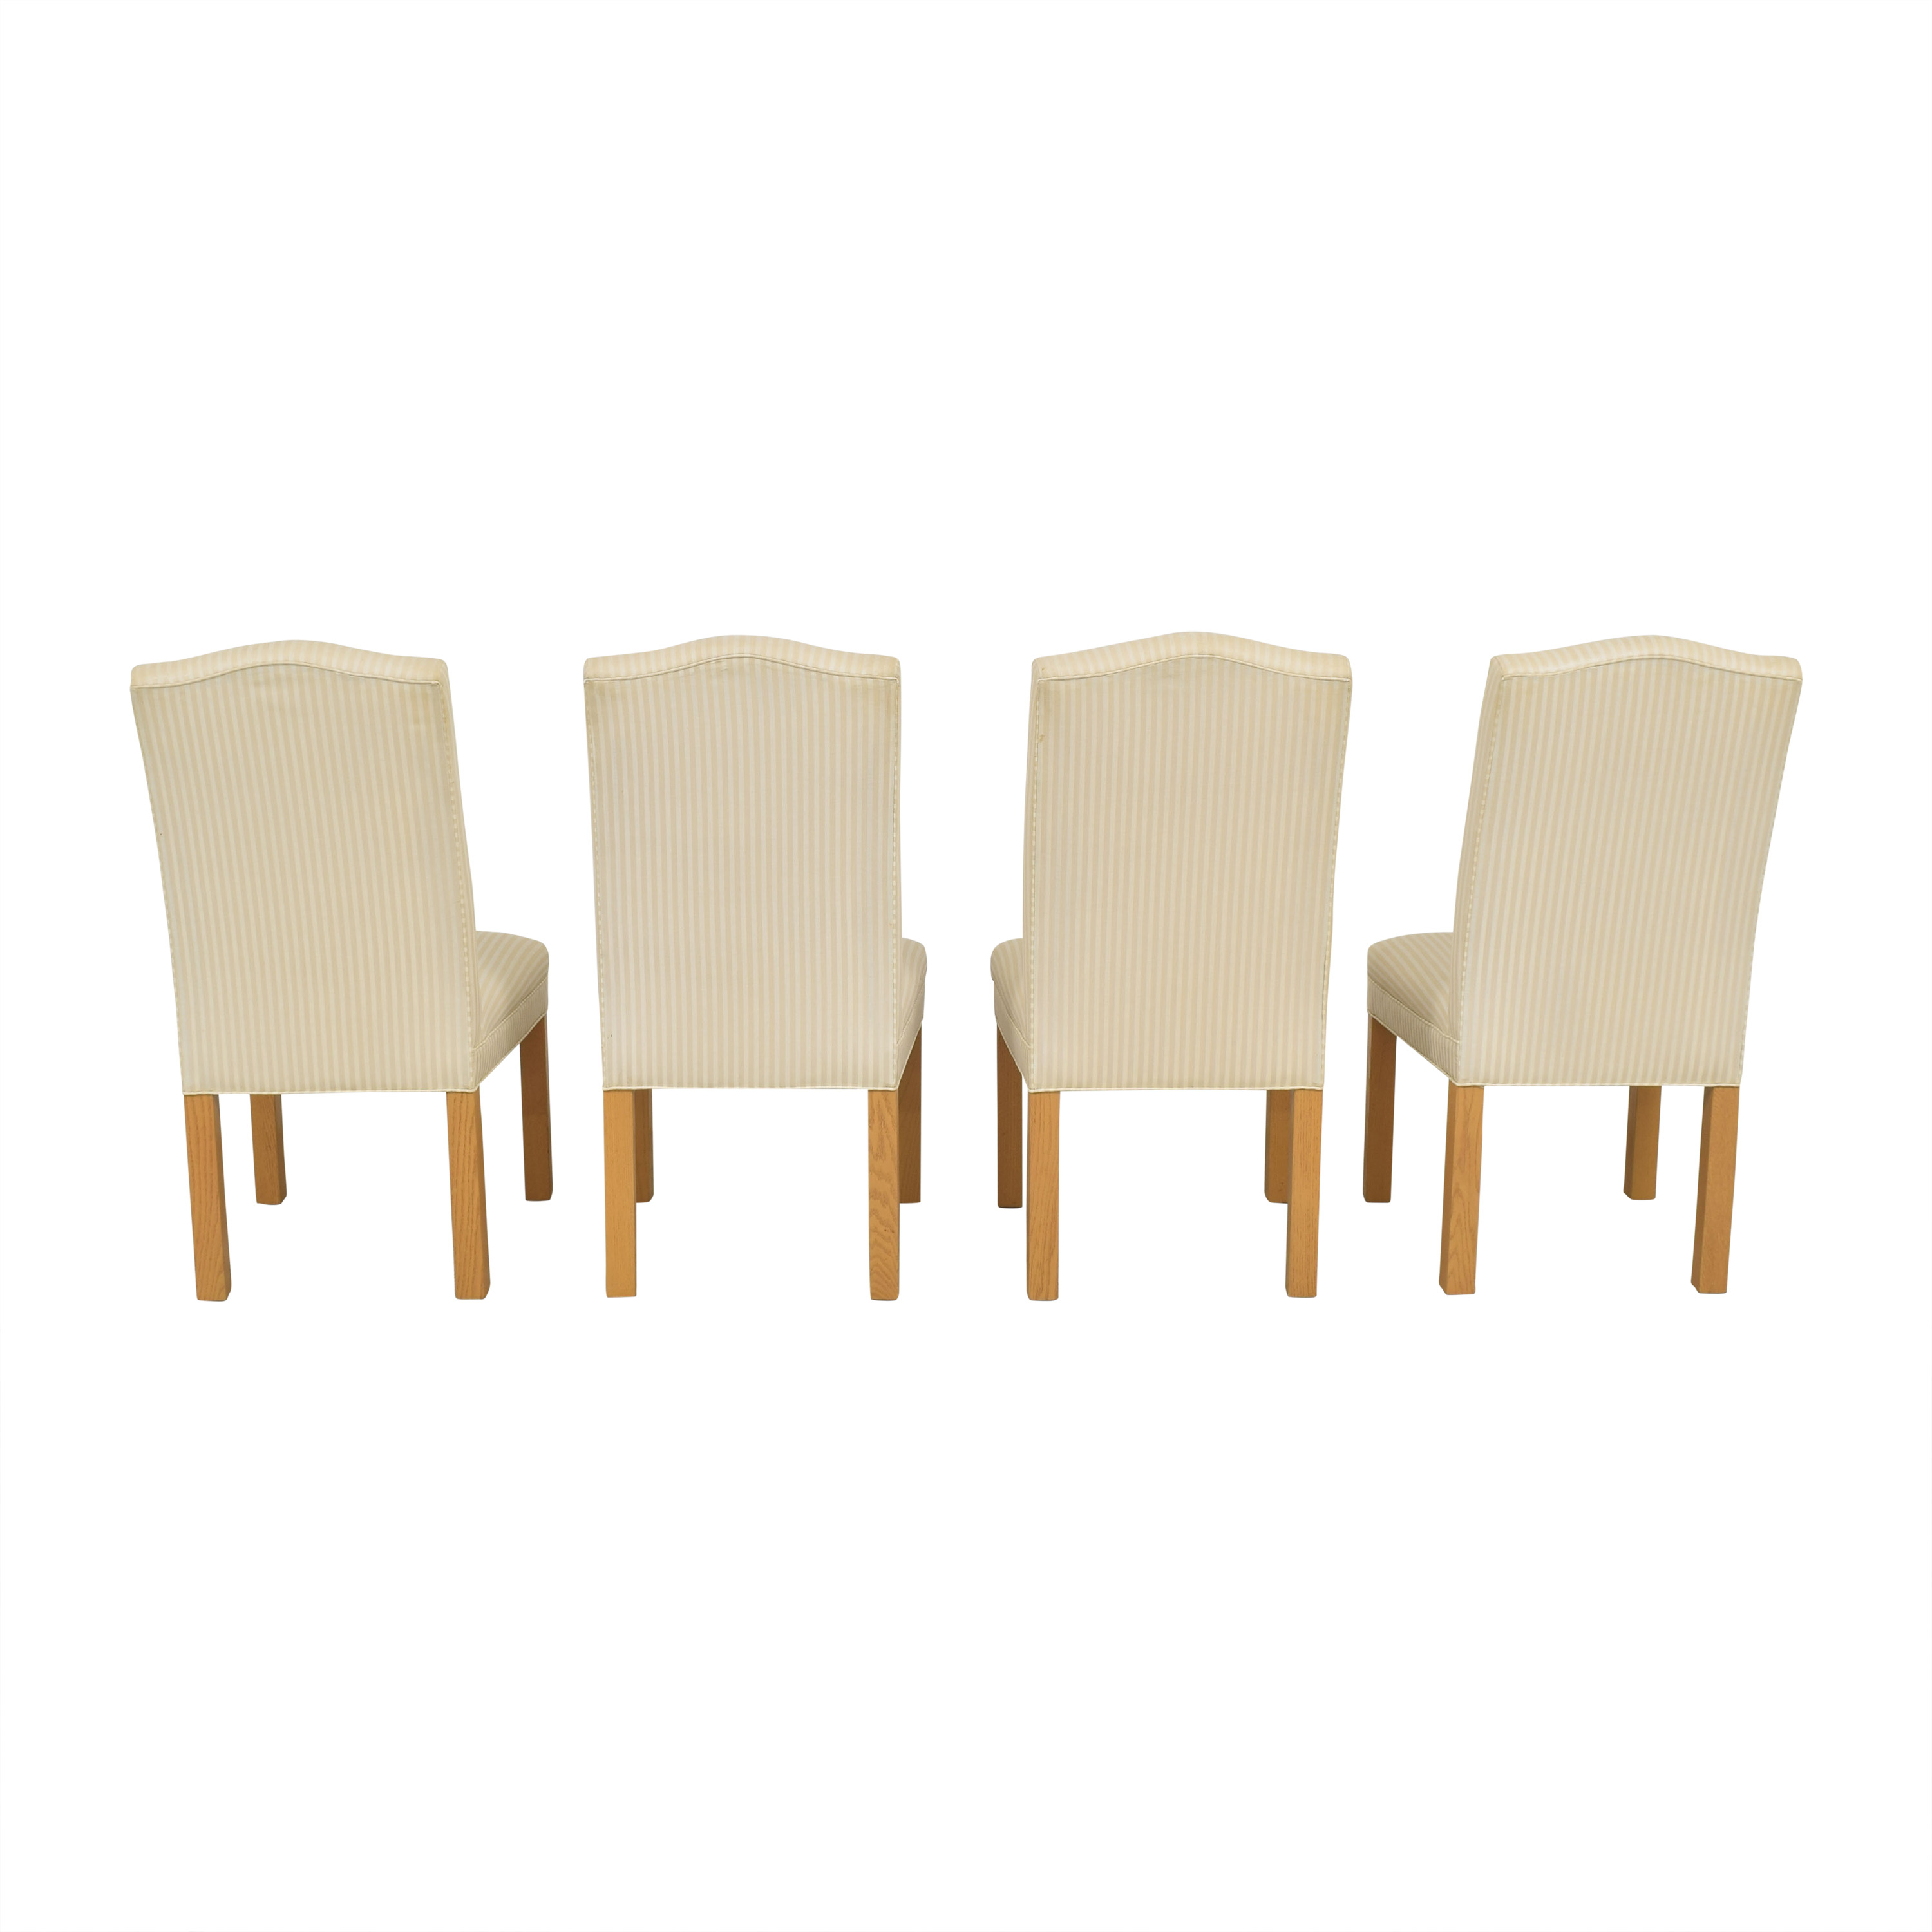 Lane Furniture Lane Furniture Upholstered Dining Side Chairs cream and light brown